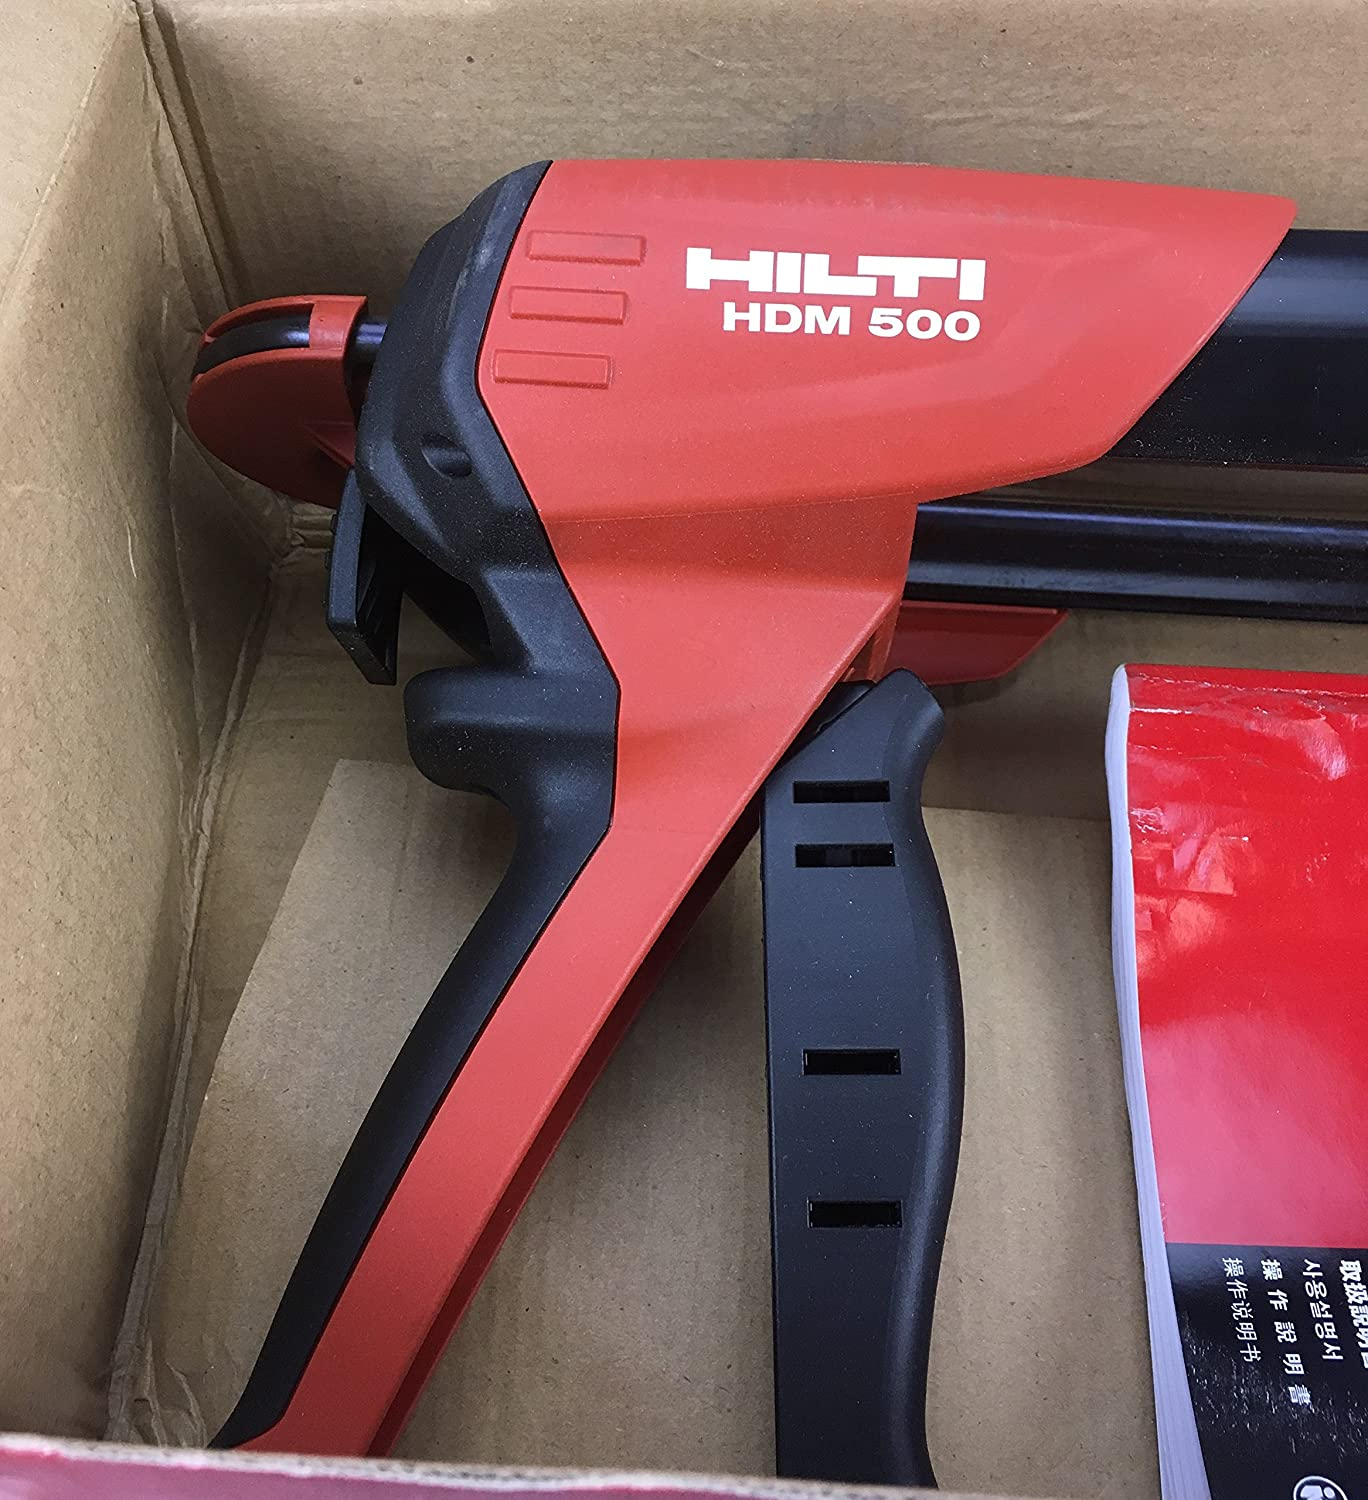 hdm 500 manual anchor adhesive dispenser with hit cr